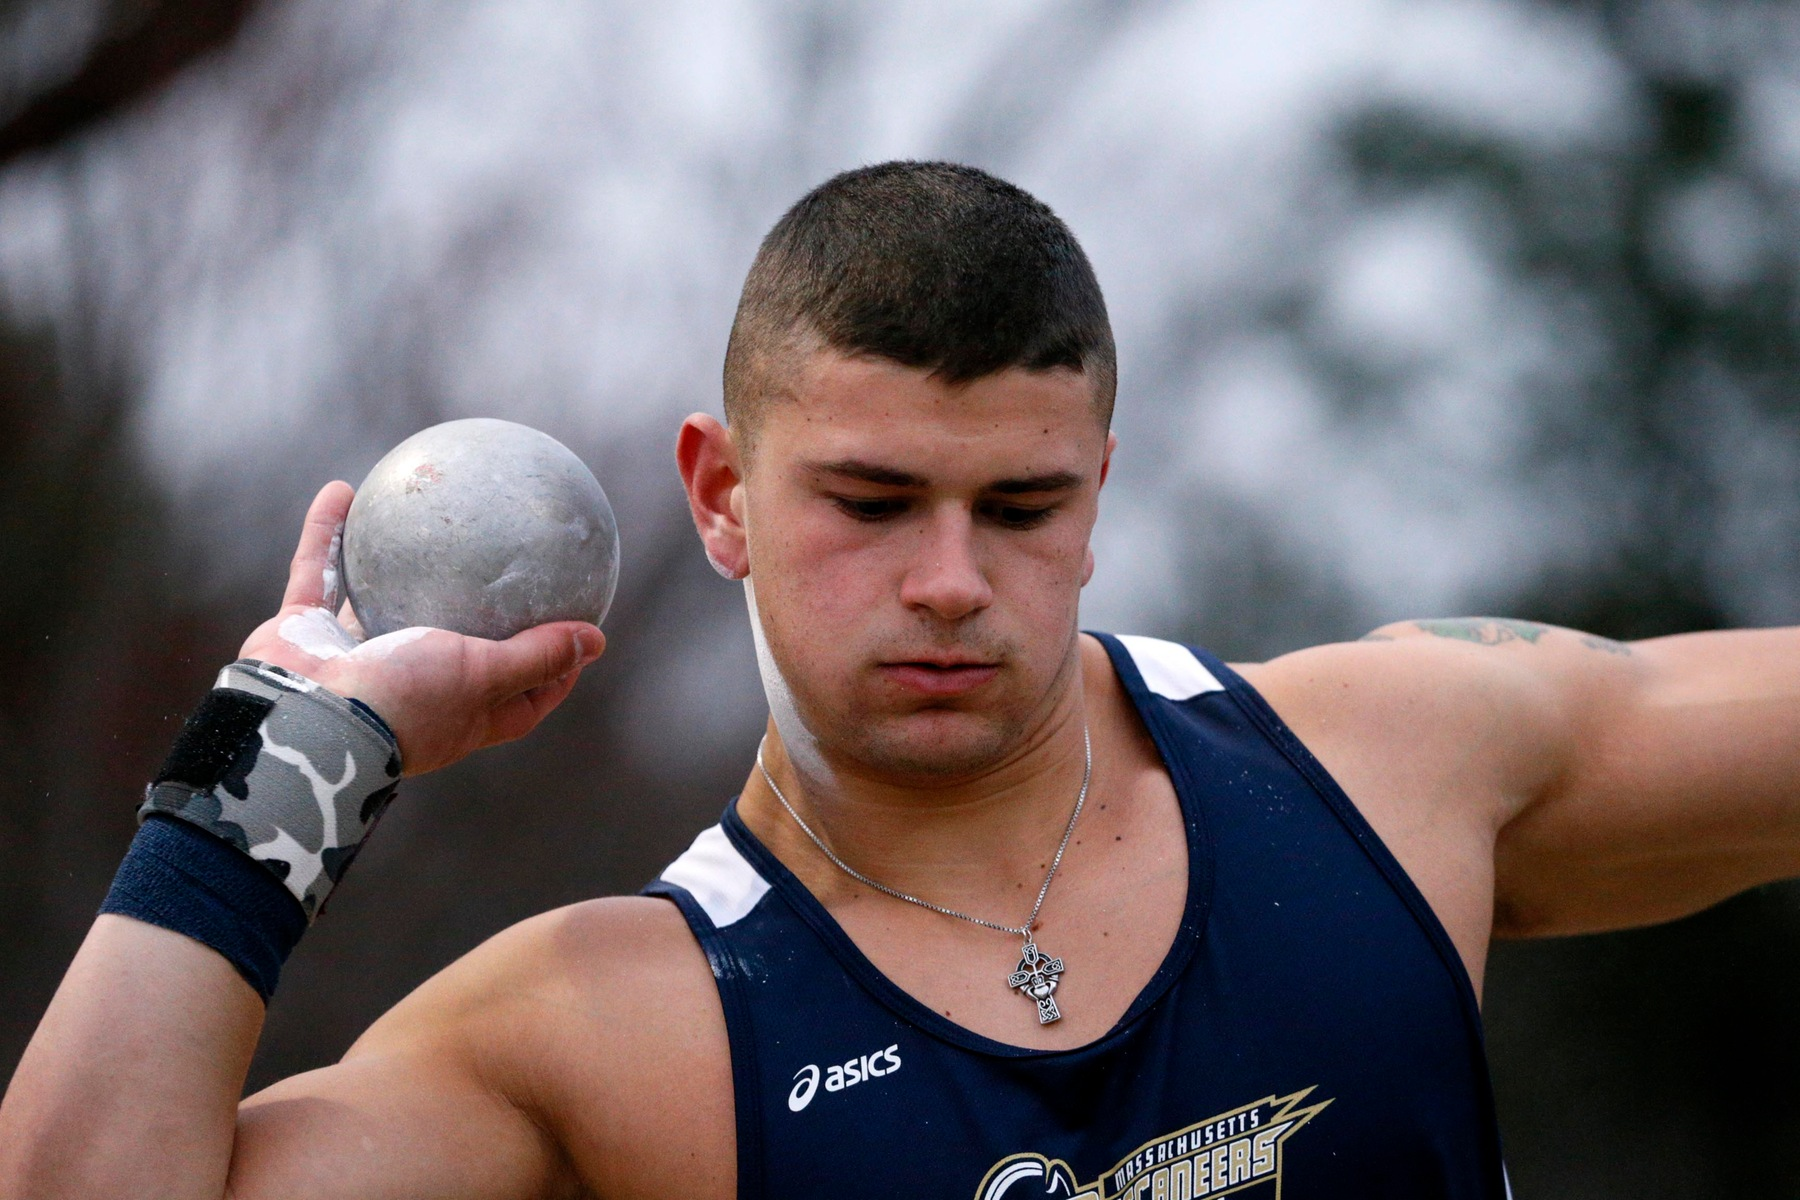 McCabe Wins Shot Put Event at MASCAC / New England Alliance Championships; Maritime Finished Men and Women Finish Last In Standings Among MASCAC Representatives